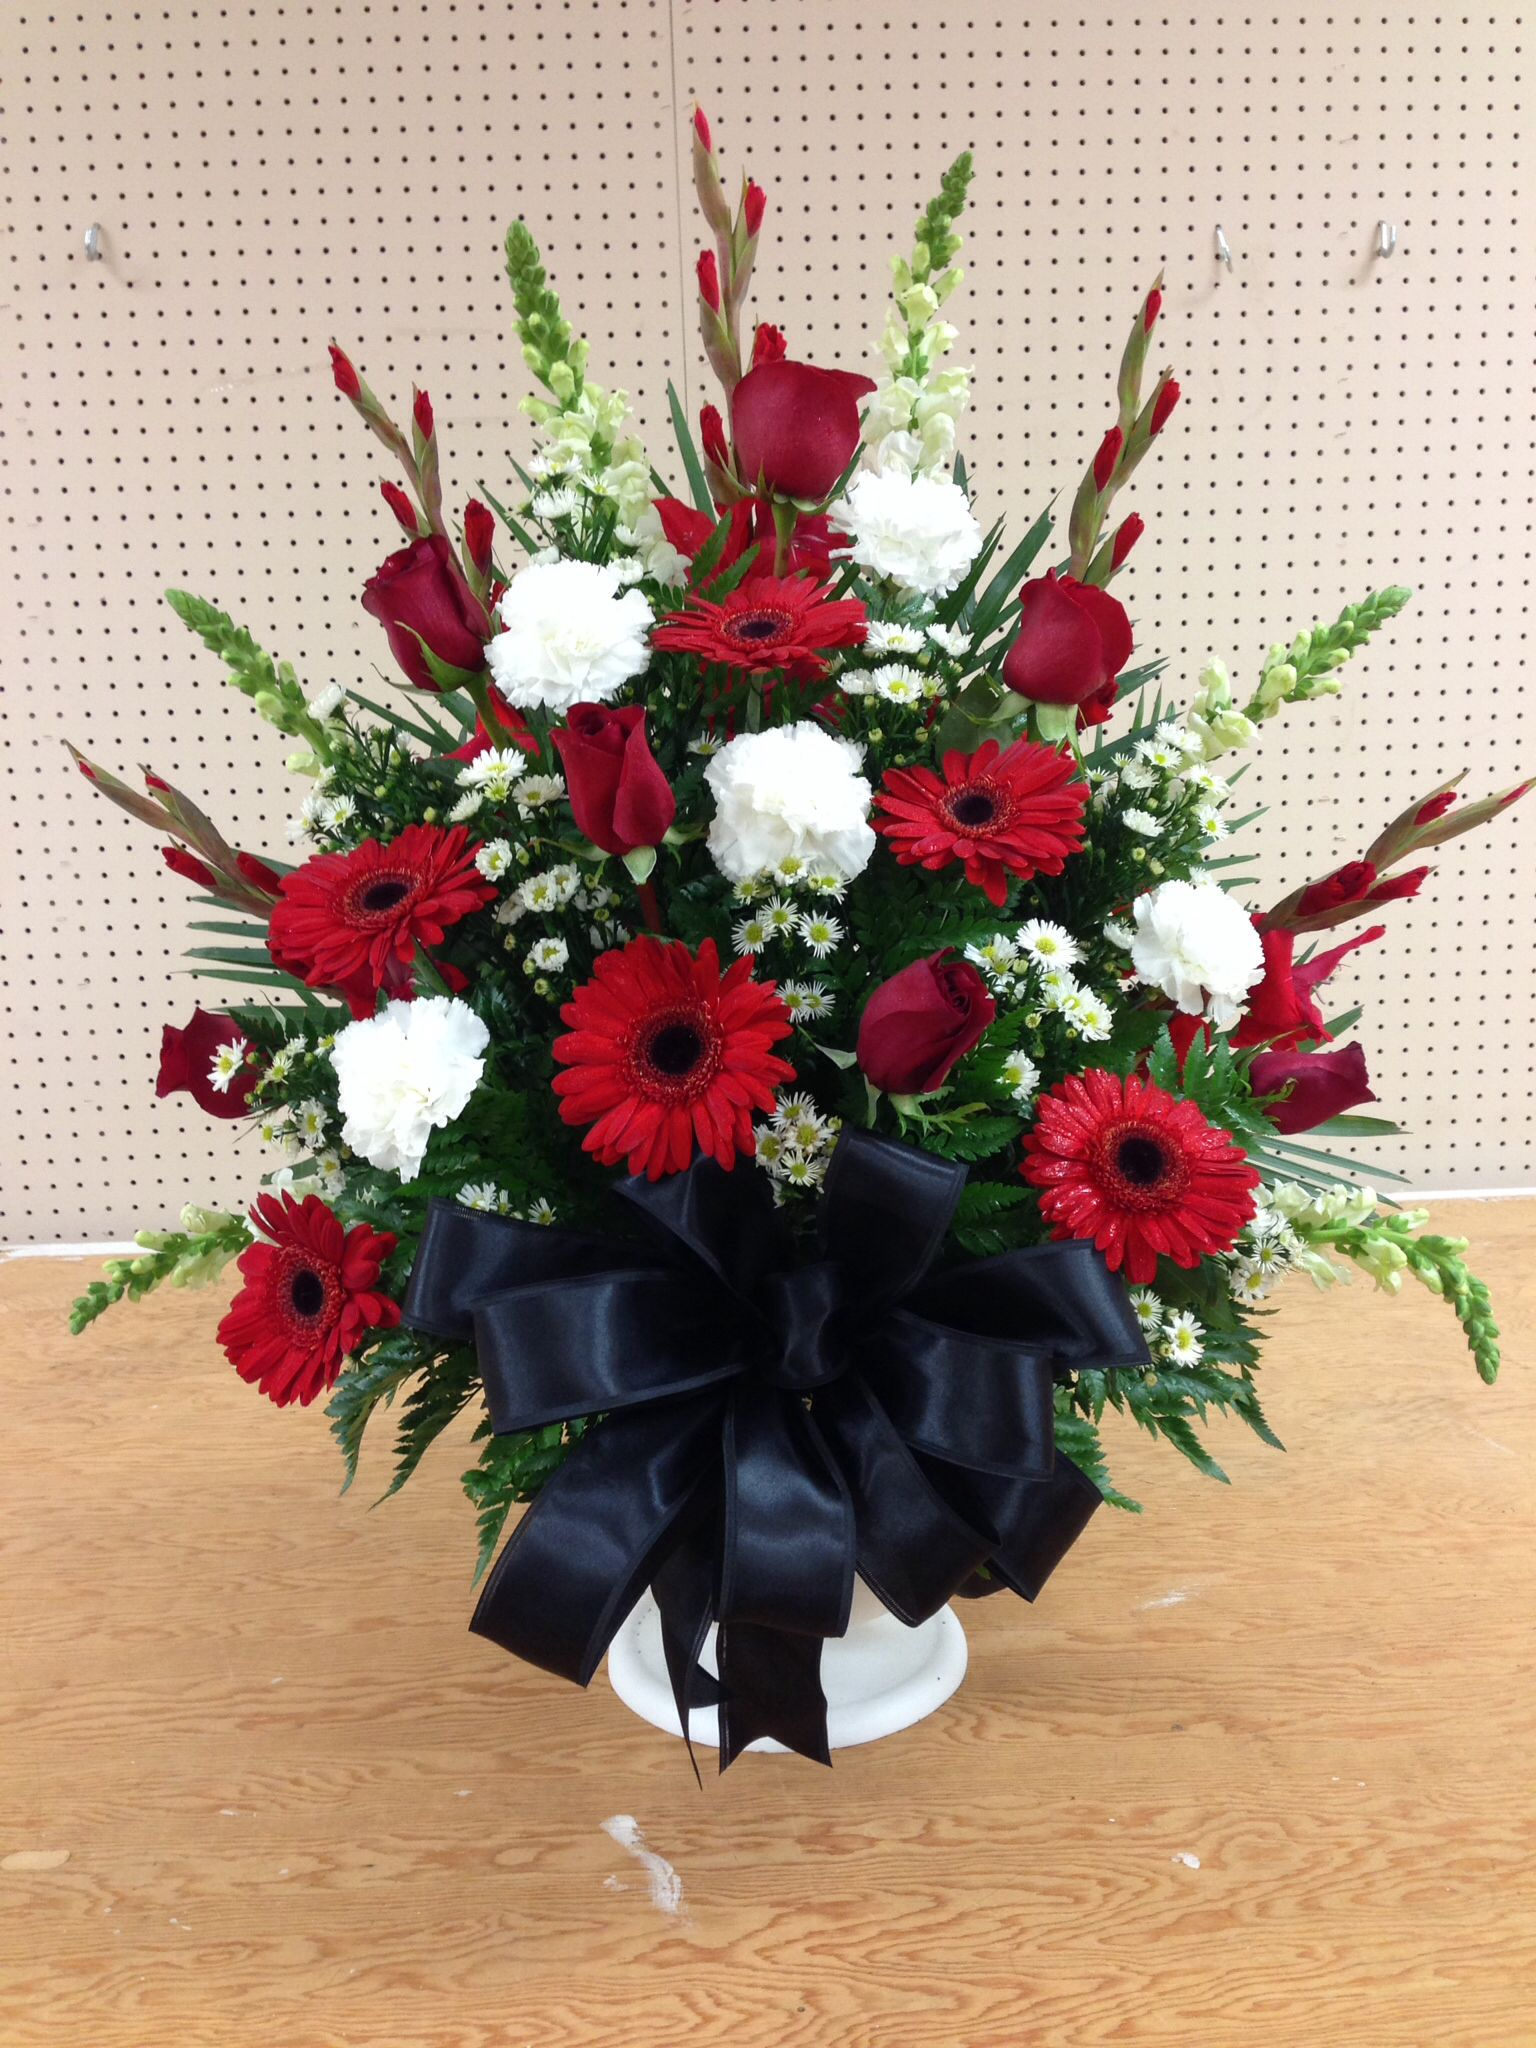 Alter arrangement, church flowers, red, white and black, gerber ...